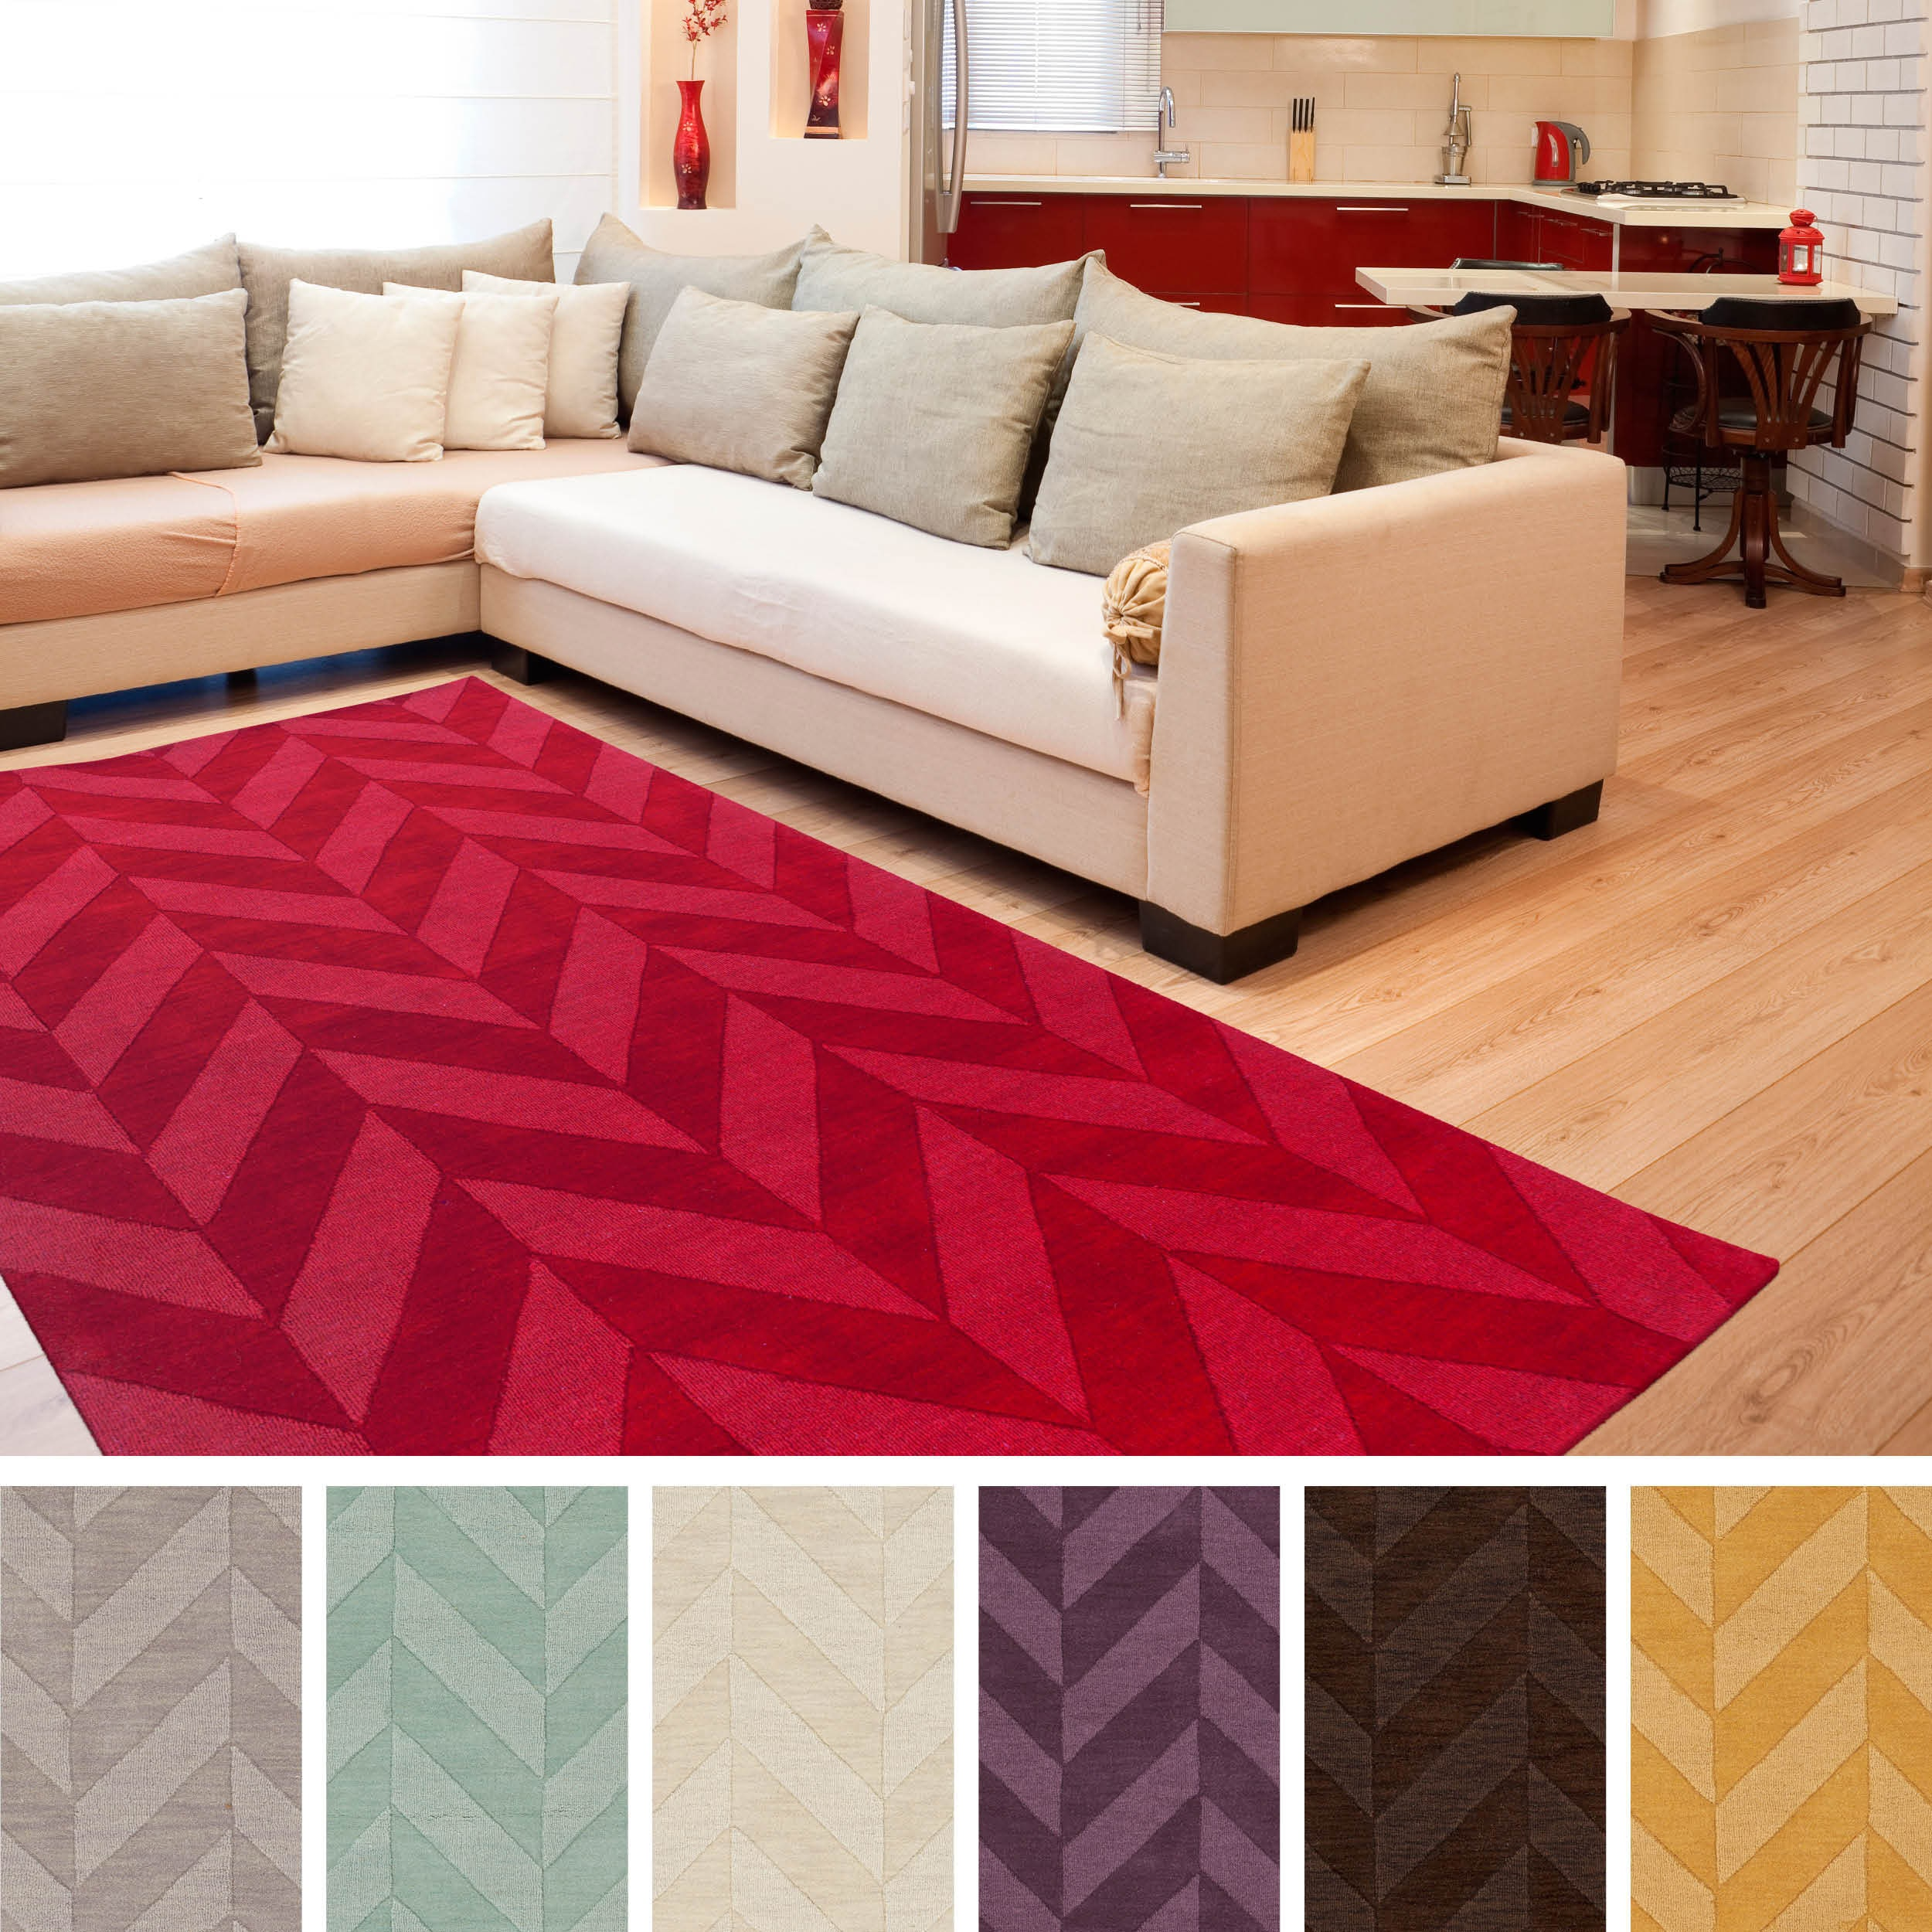 Artistic Weavers Hand-woven Ann Tone-on-Tone Geometric Zig-Zag Wool Area Rug (8' x 10')